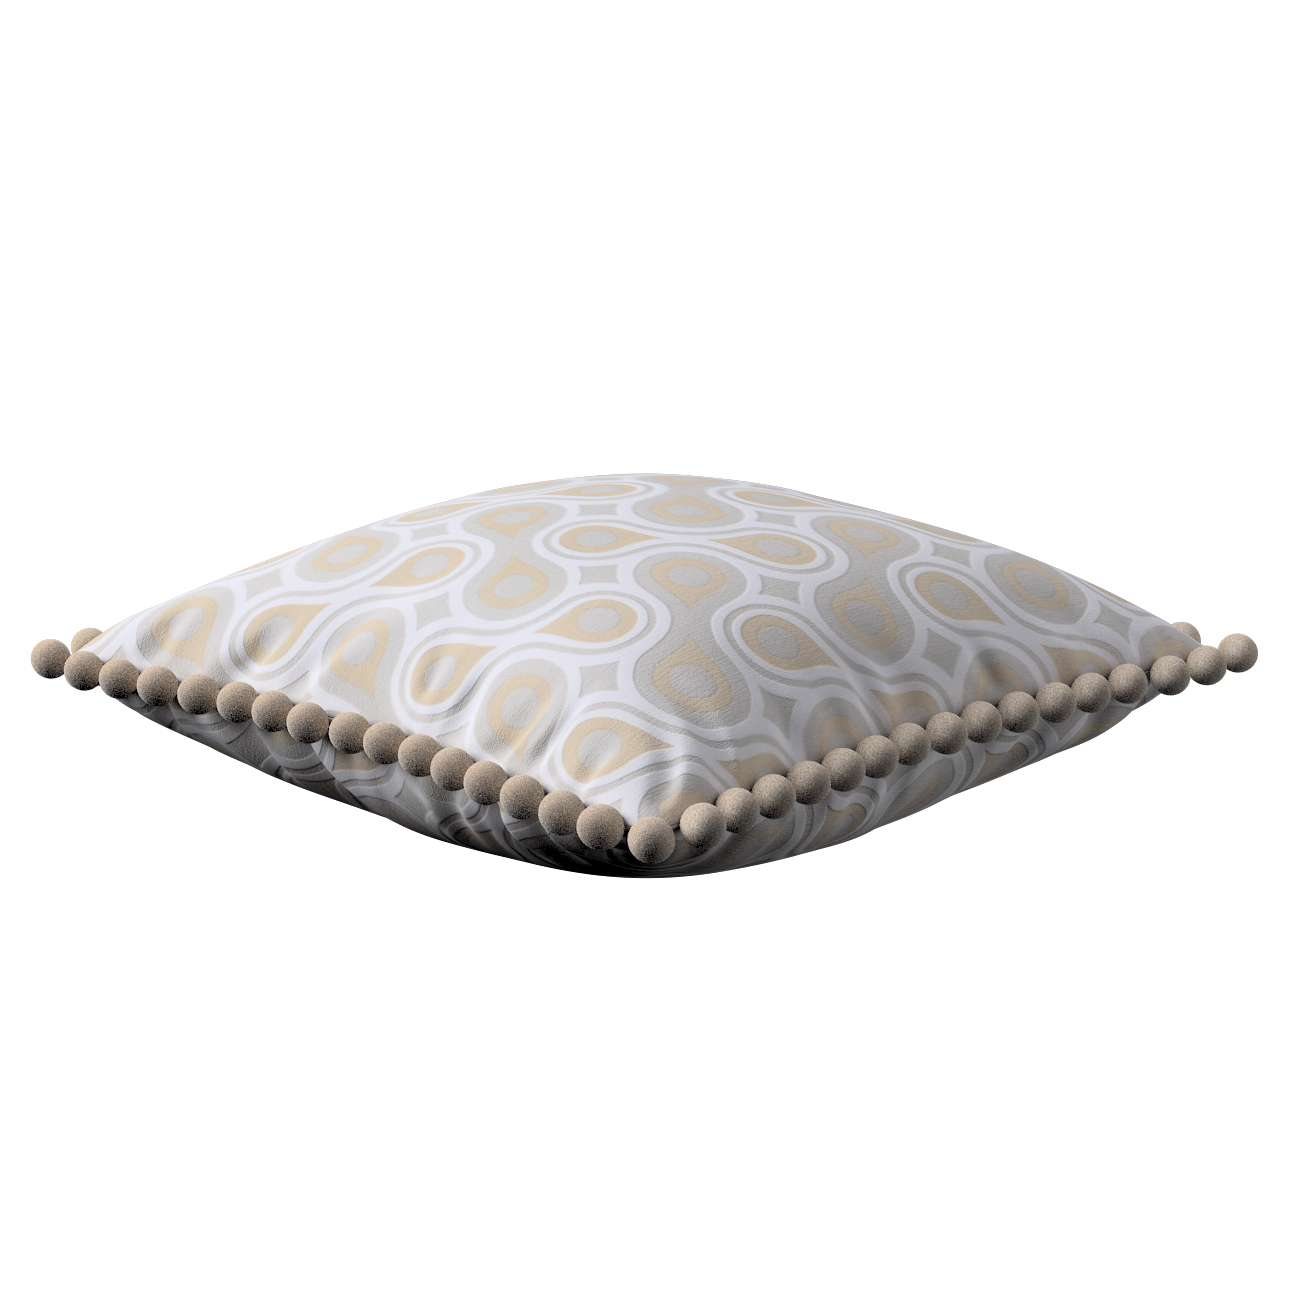 Vera cushion cover with pom poms in collection Flowers, fabric: 311-11